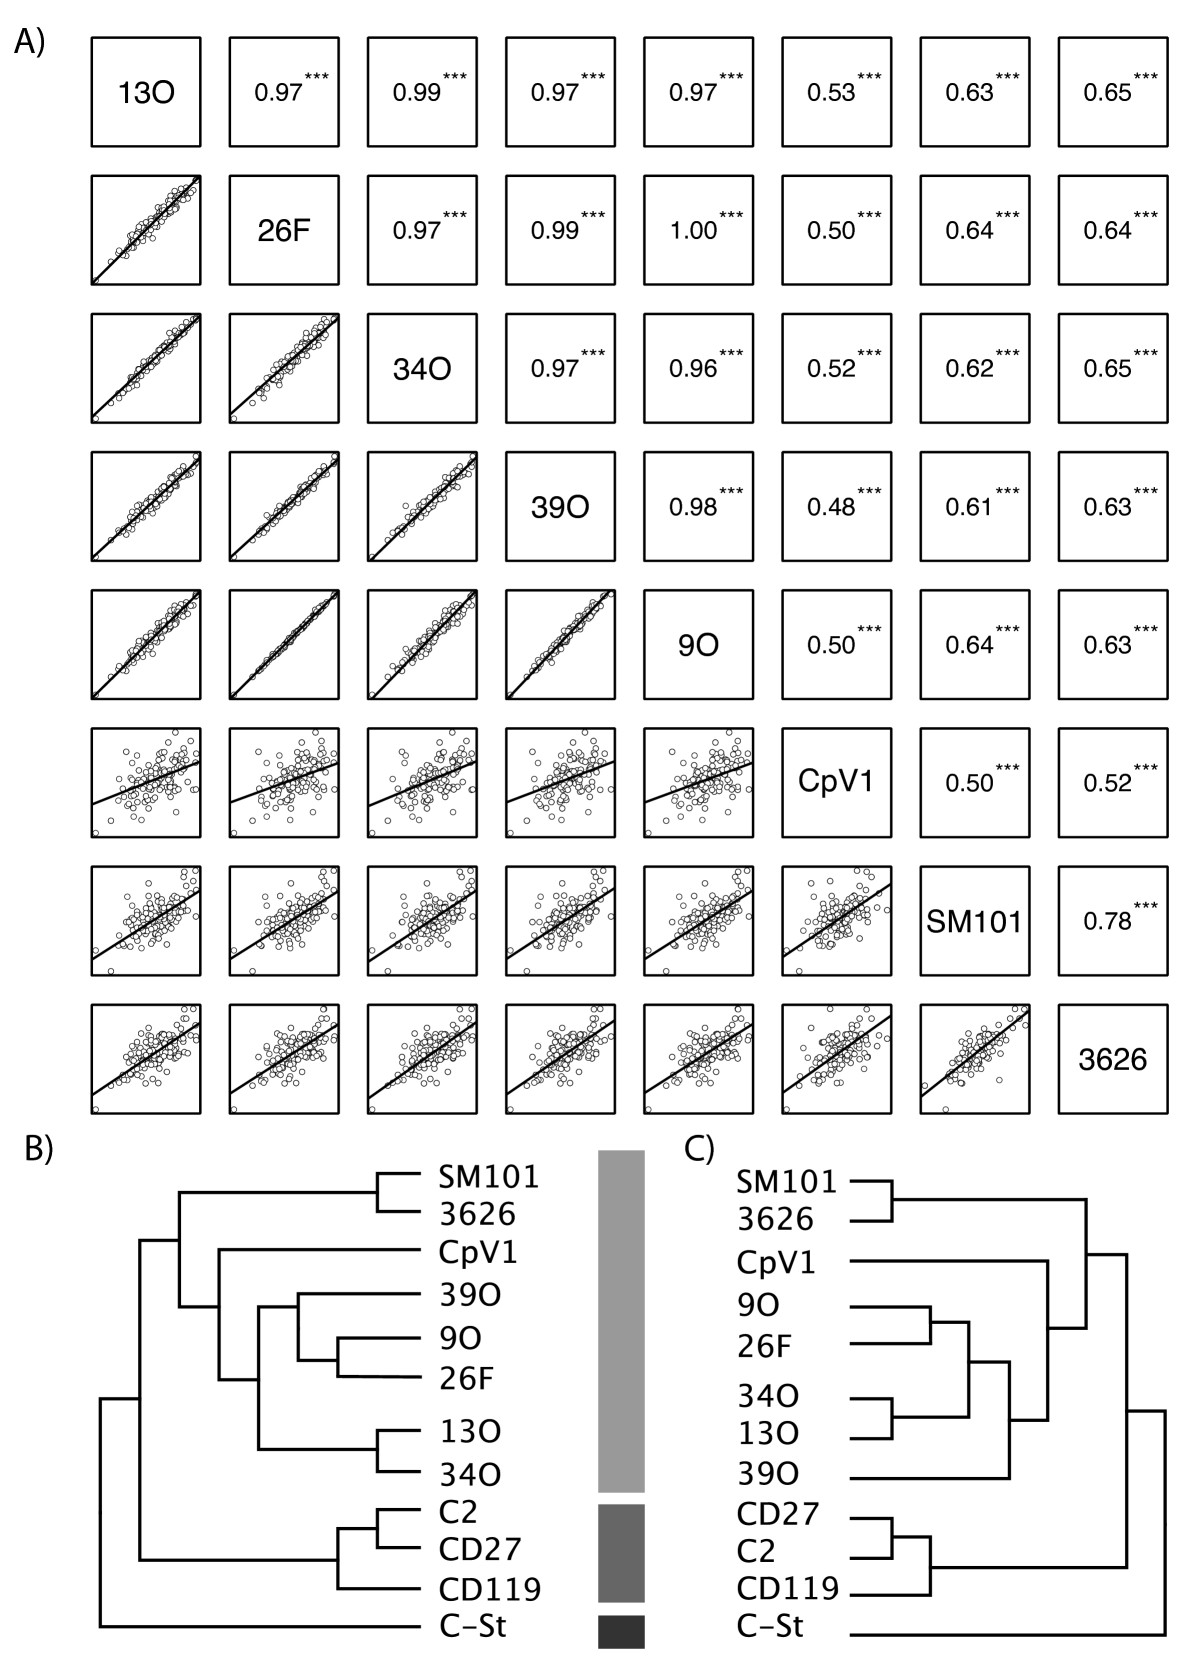 http://static-content.springer.com/image/art%3A10.1186%2F1471-2164-12-282/MediaObjects/12864_2011_3391_Fig1_HTML.jpg